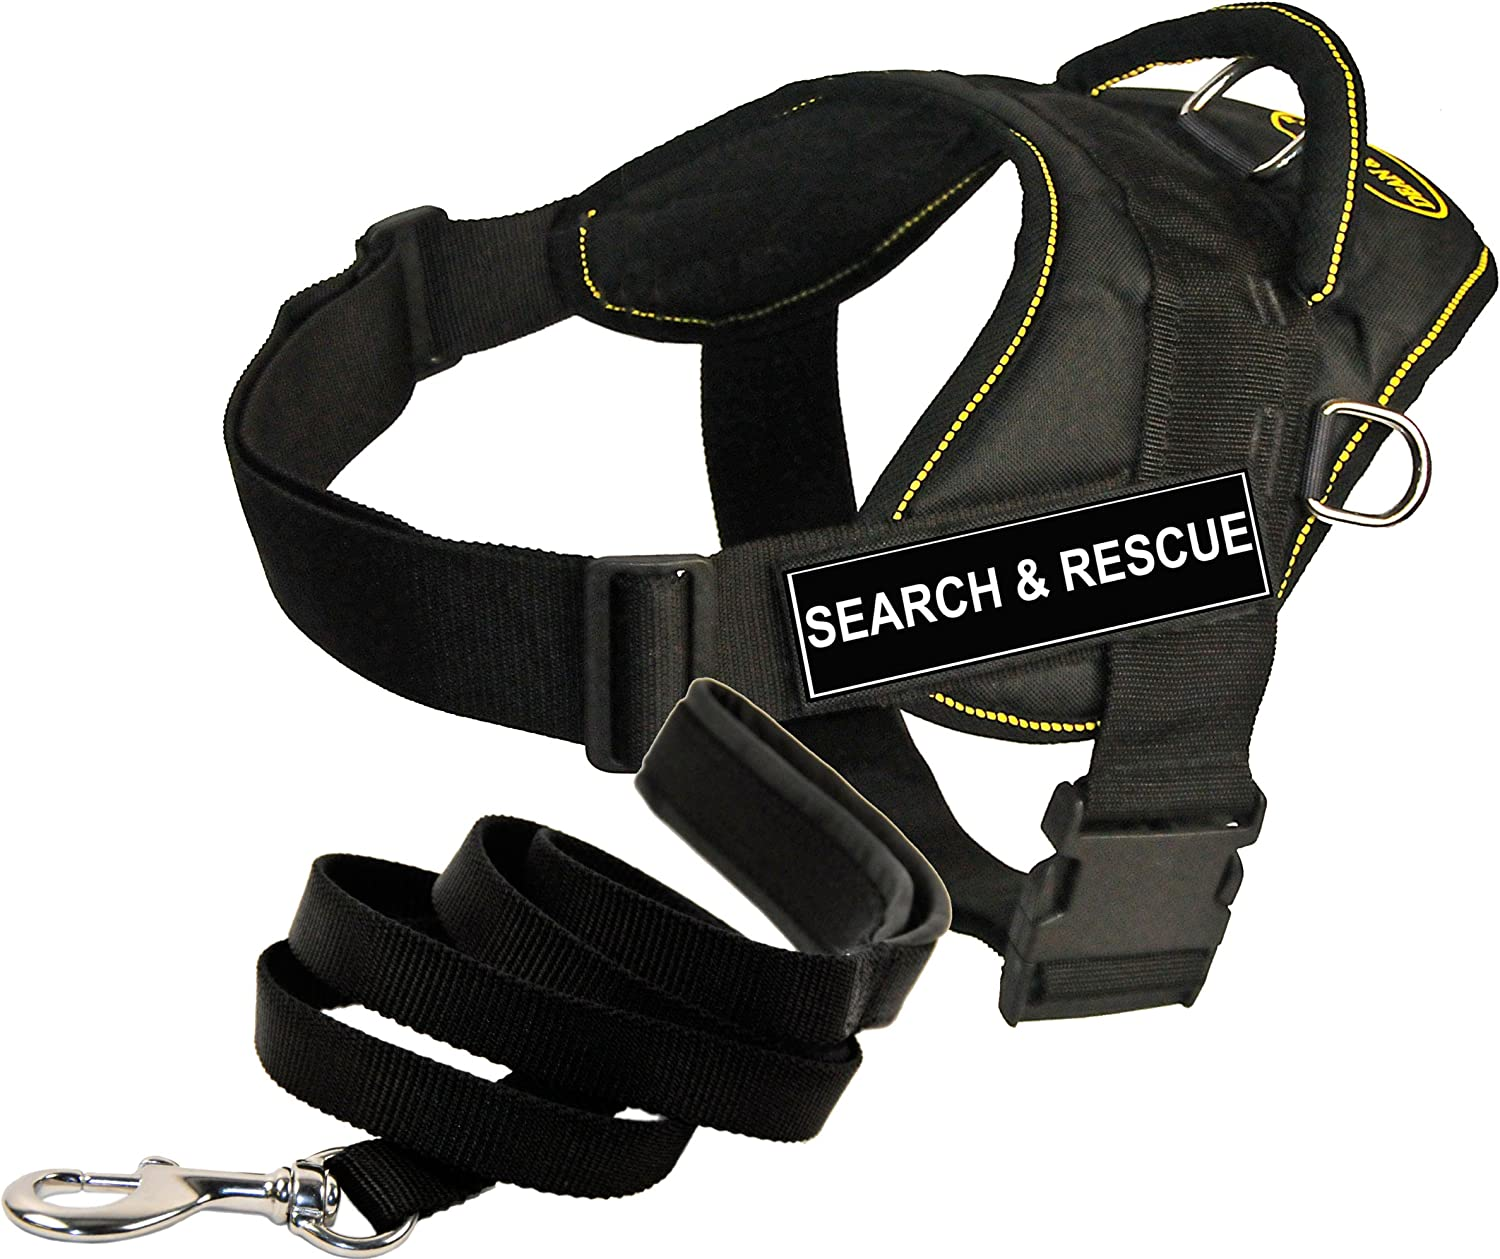 Dean and Tyler Bundle  One DT Fun Works  Harness, Search and Rescue, Yellow Trim, XLarge + One Padded Puppy  Leash, 6 FT Stainless Snap  Black